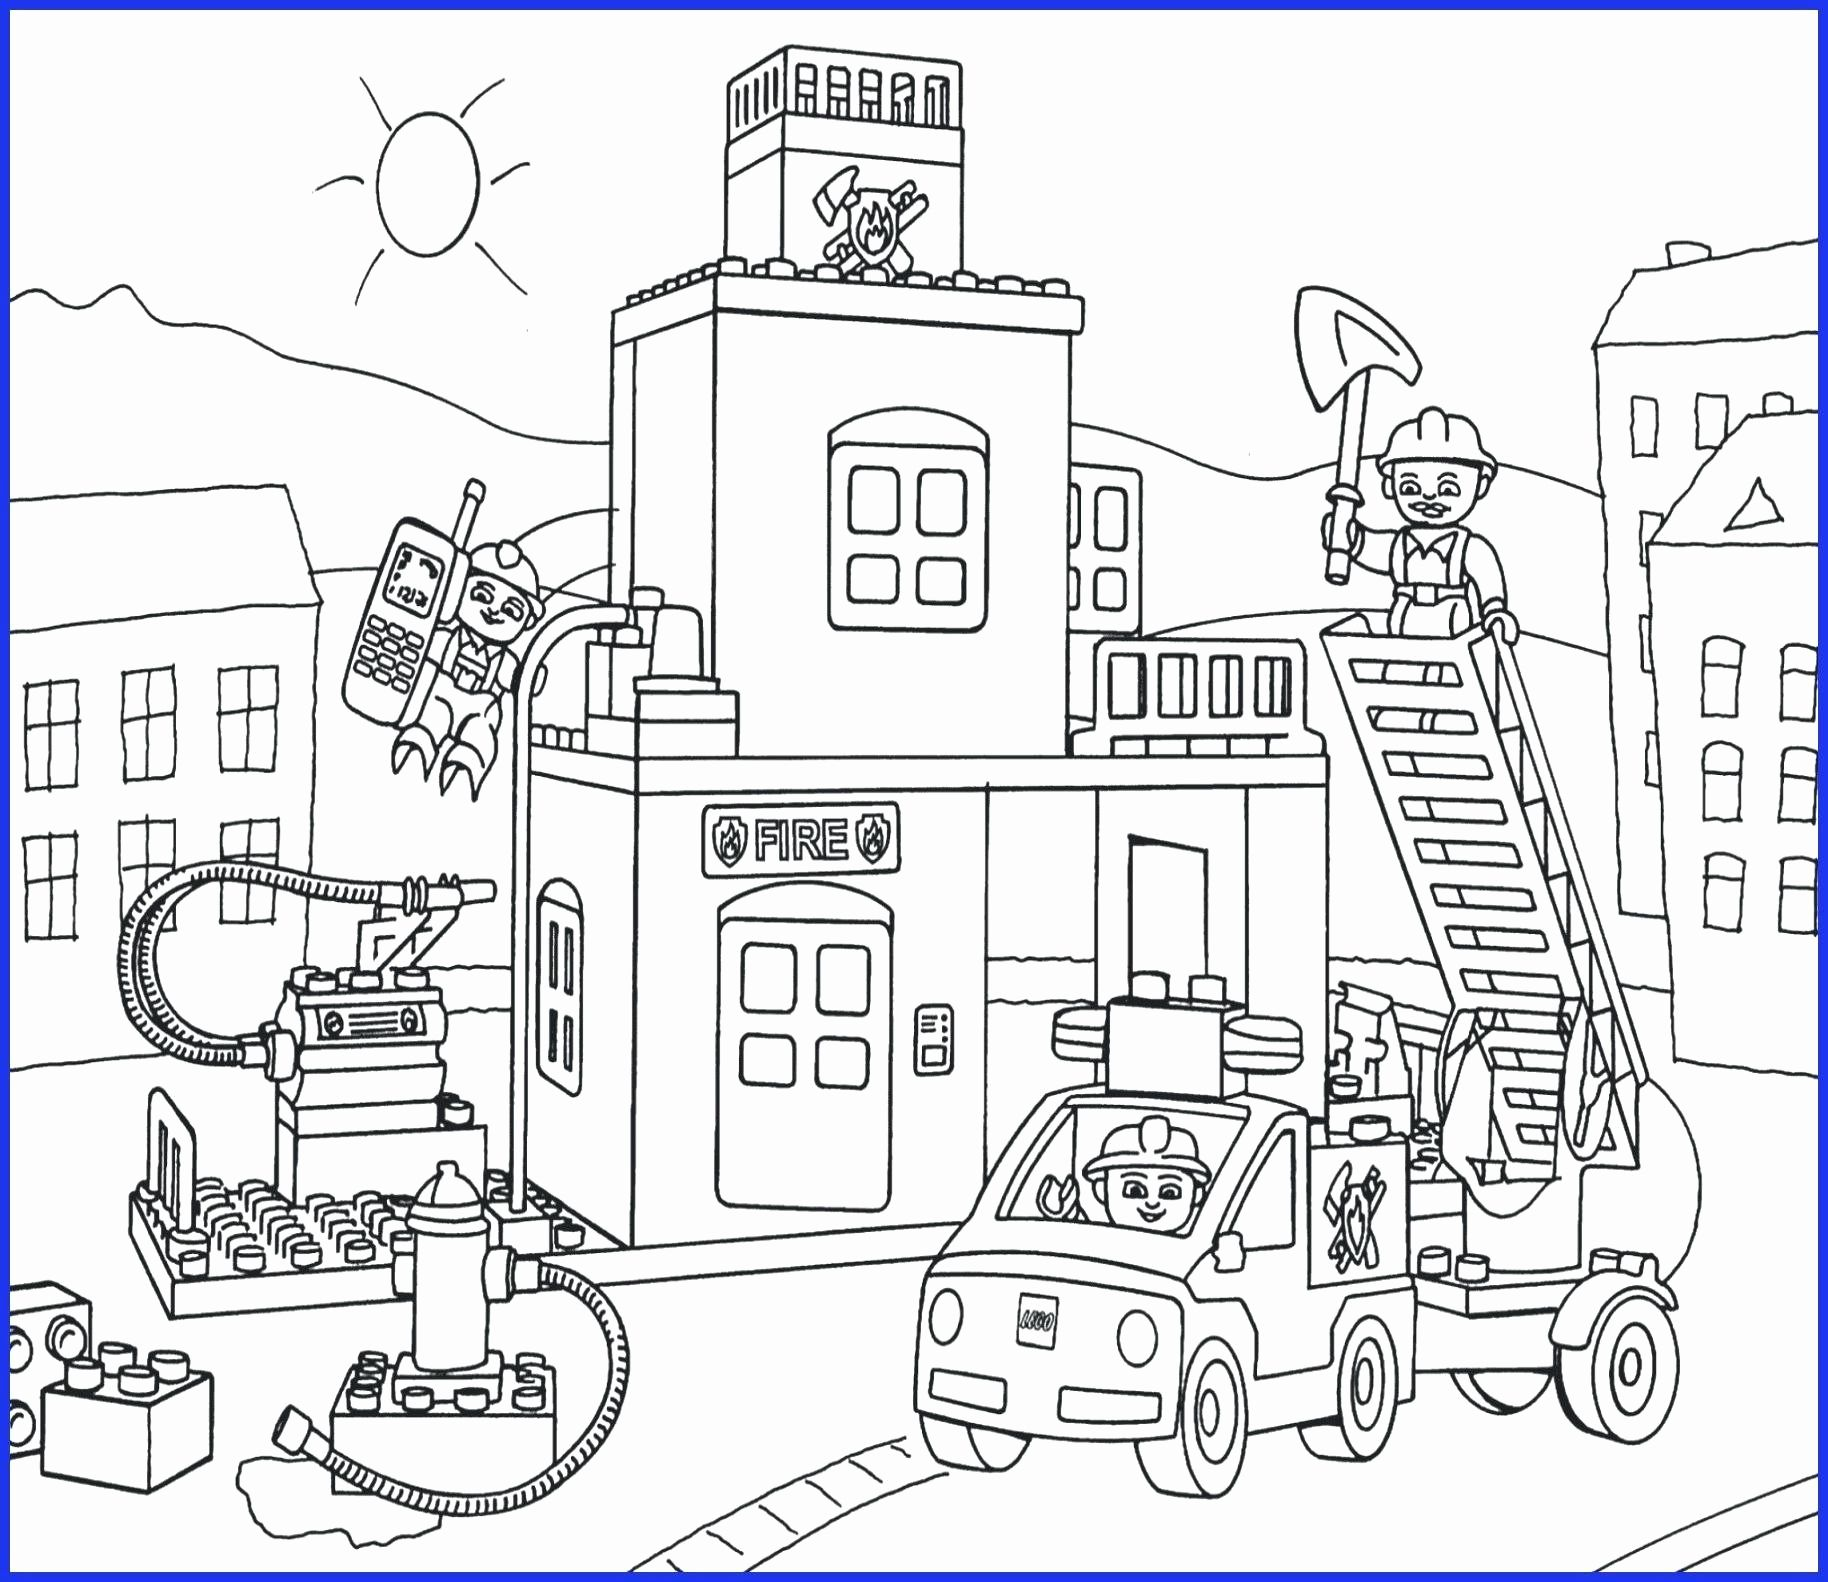 Transport Coloring Sheets In 2020 With Images Lego Coloring Pages Ninjago Coloring Pages Airplane Coloring Pages